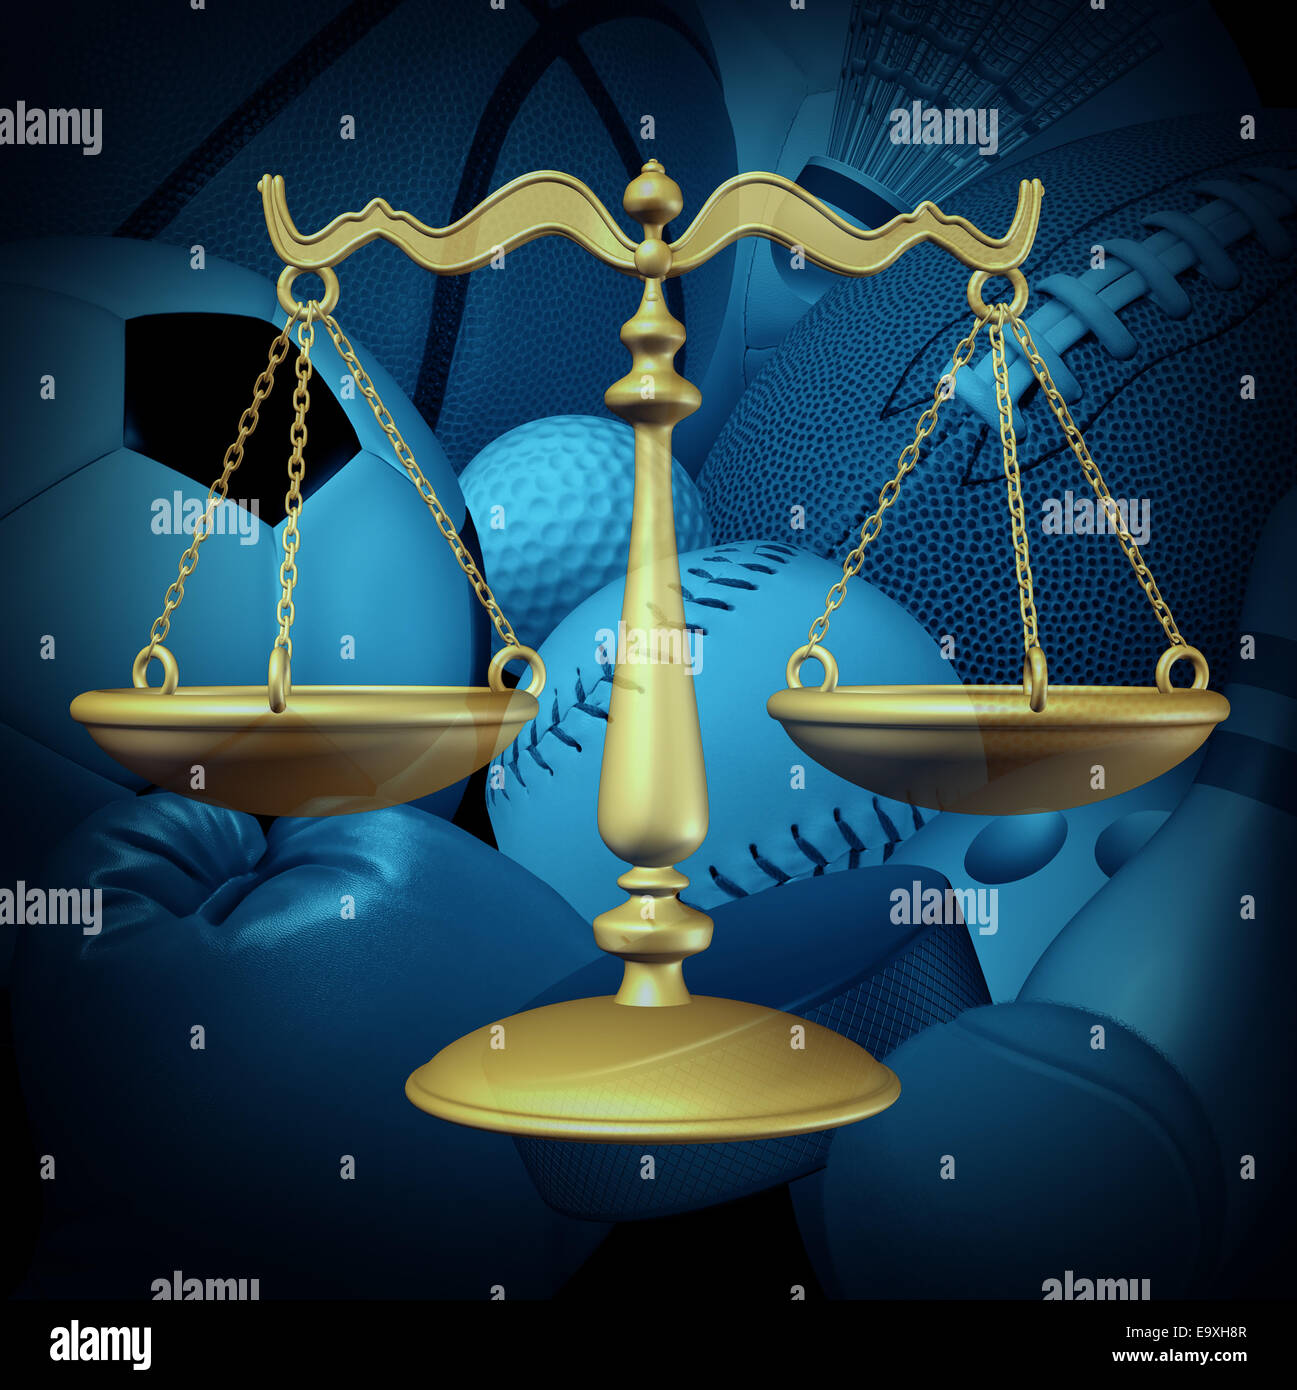 Sports law concept with sport equipment and a legel scale of justice symbol as an icon for amateur and professional - Stock Image